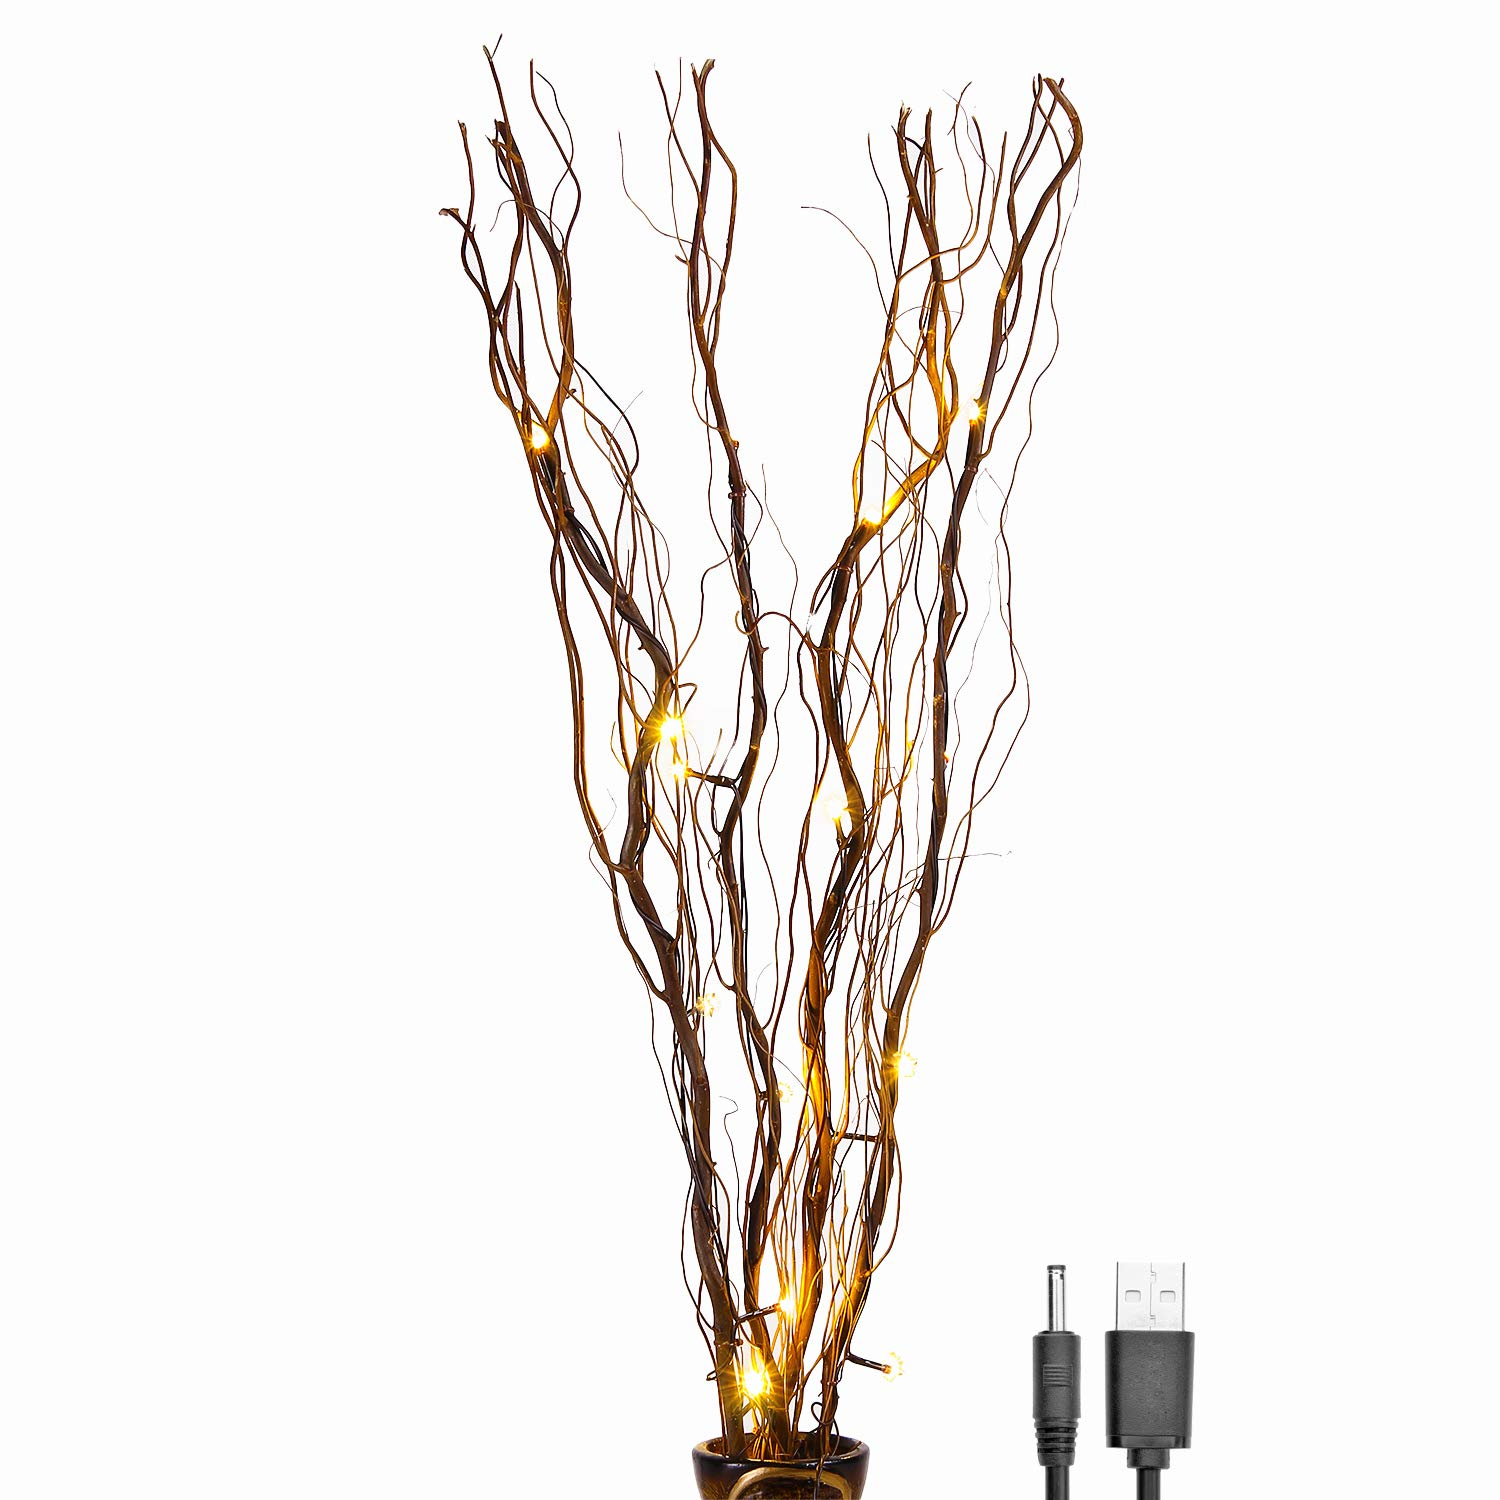 Lightshare Upgraded 36Inch 16LED Natural Willow Twig Lighted Branch for Home Decoration, USB Plug-in and Battery Powered